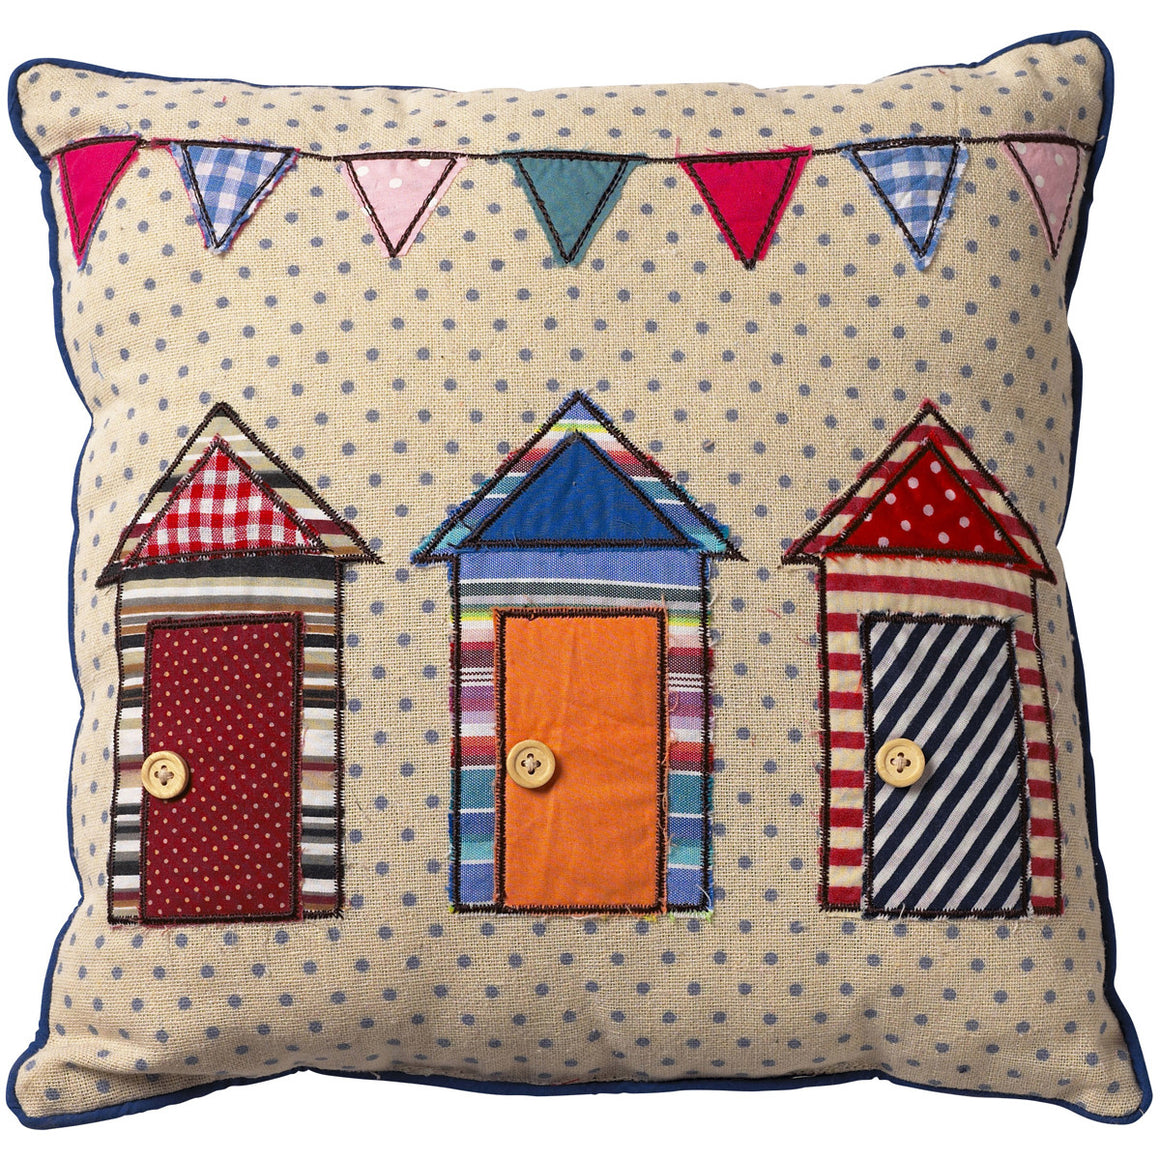 Beach Hut Cushion - The Love Trees